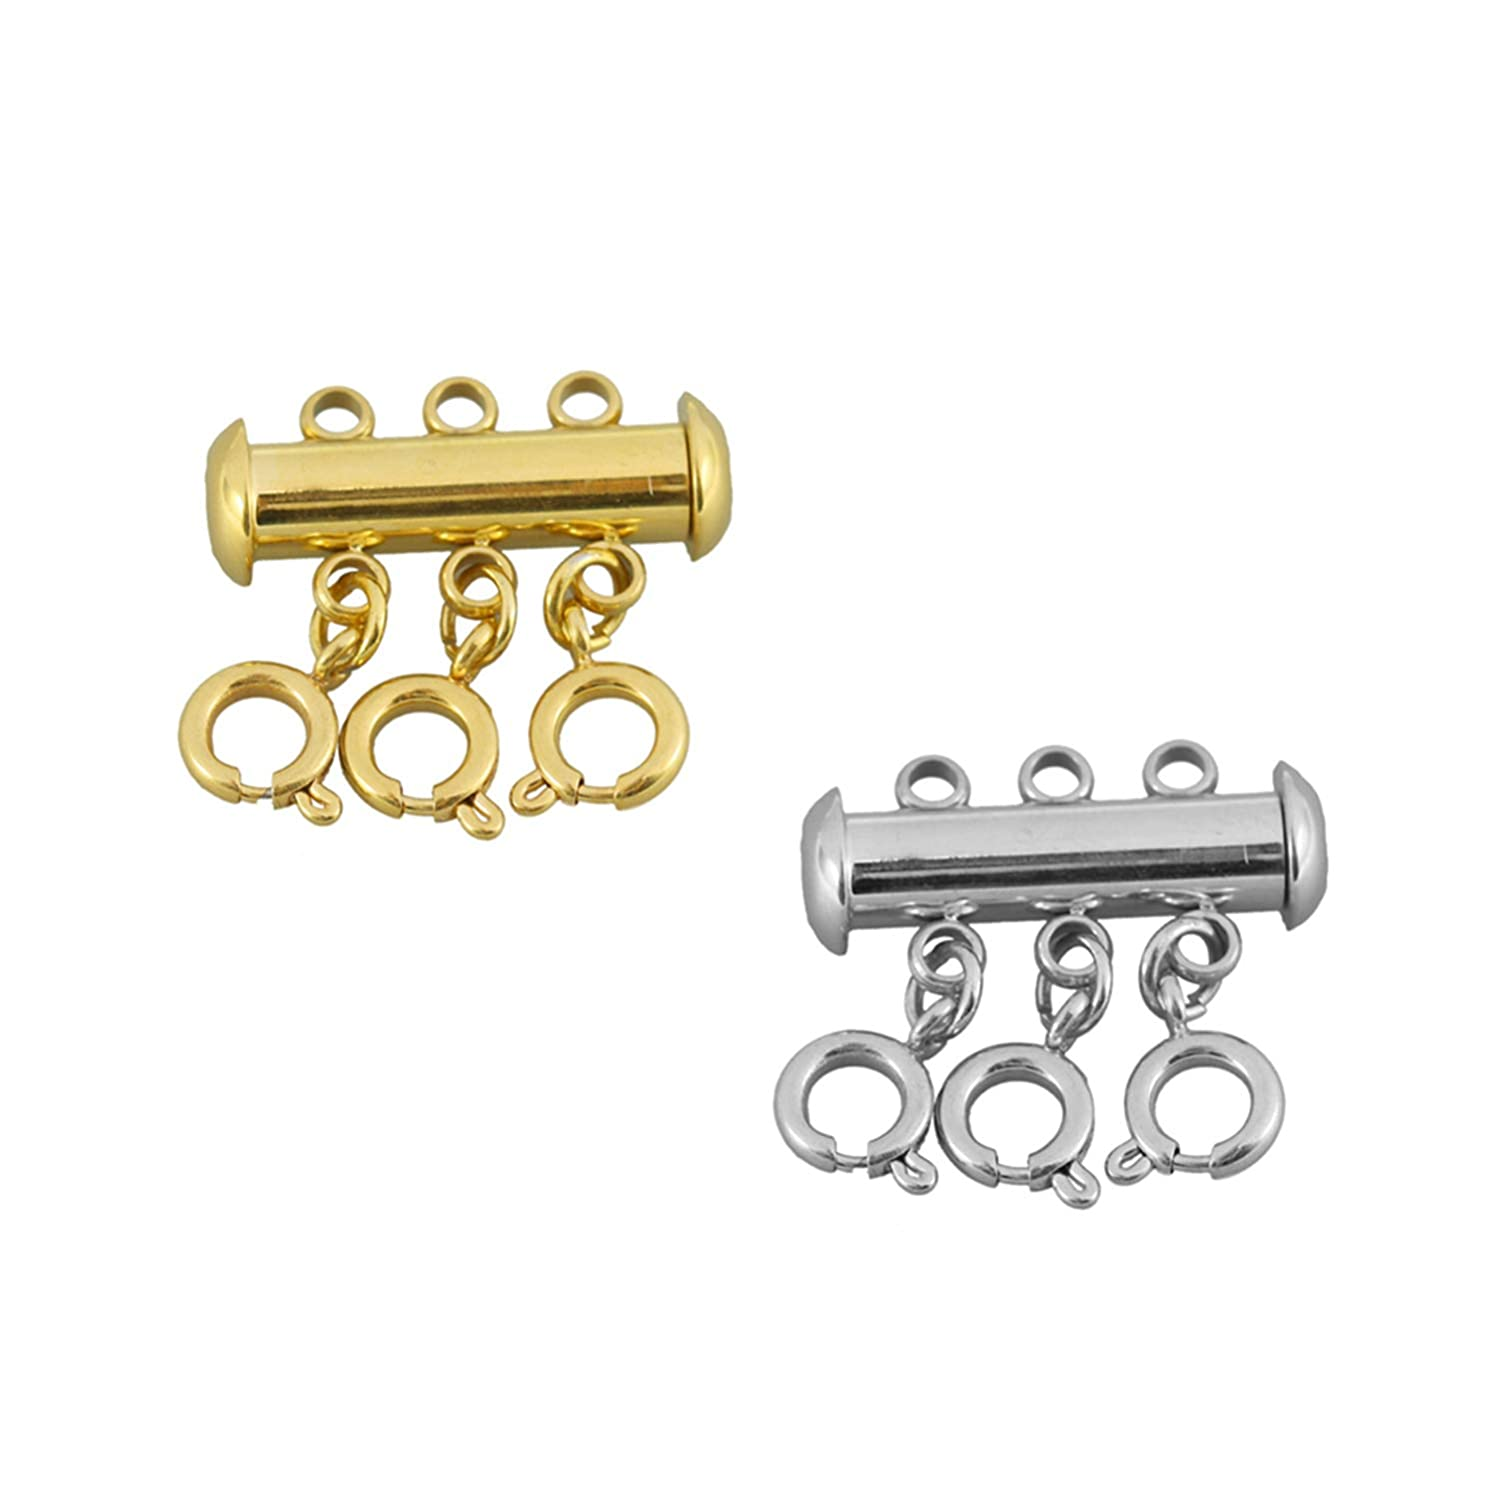 2 Pcs 316 Stainless Steel Necklace Spacer Layering Clasps Multistrand Clasp for Layered Bracelet Necklace Jewelry Crafts 2/&3, Rose Gold